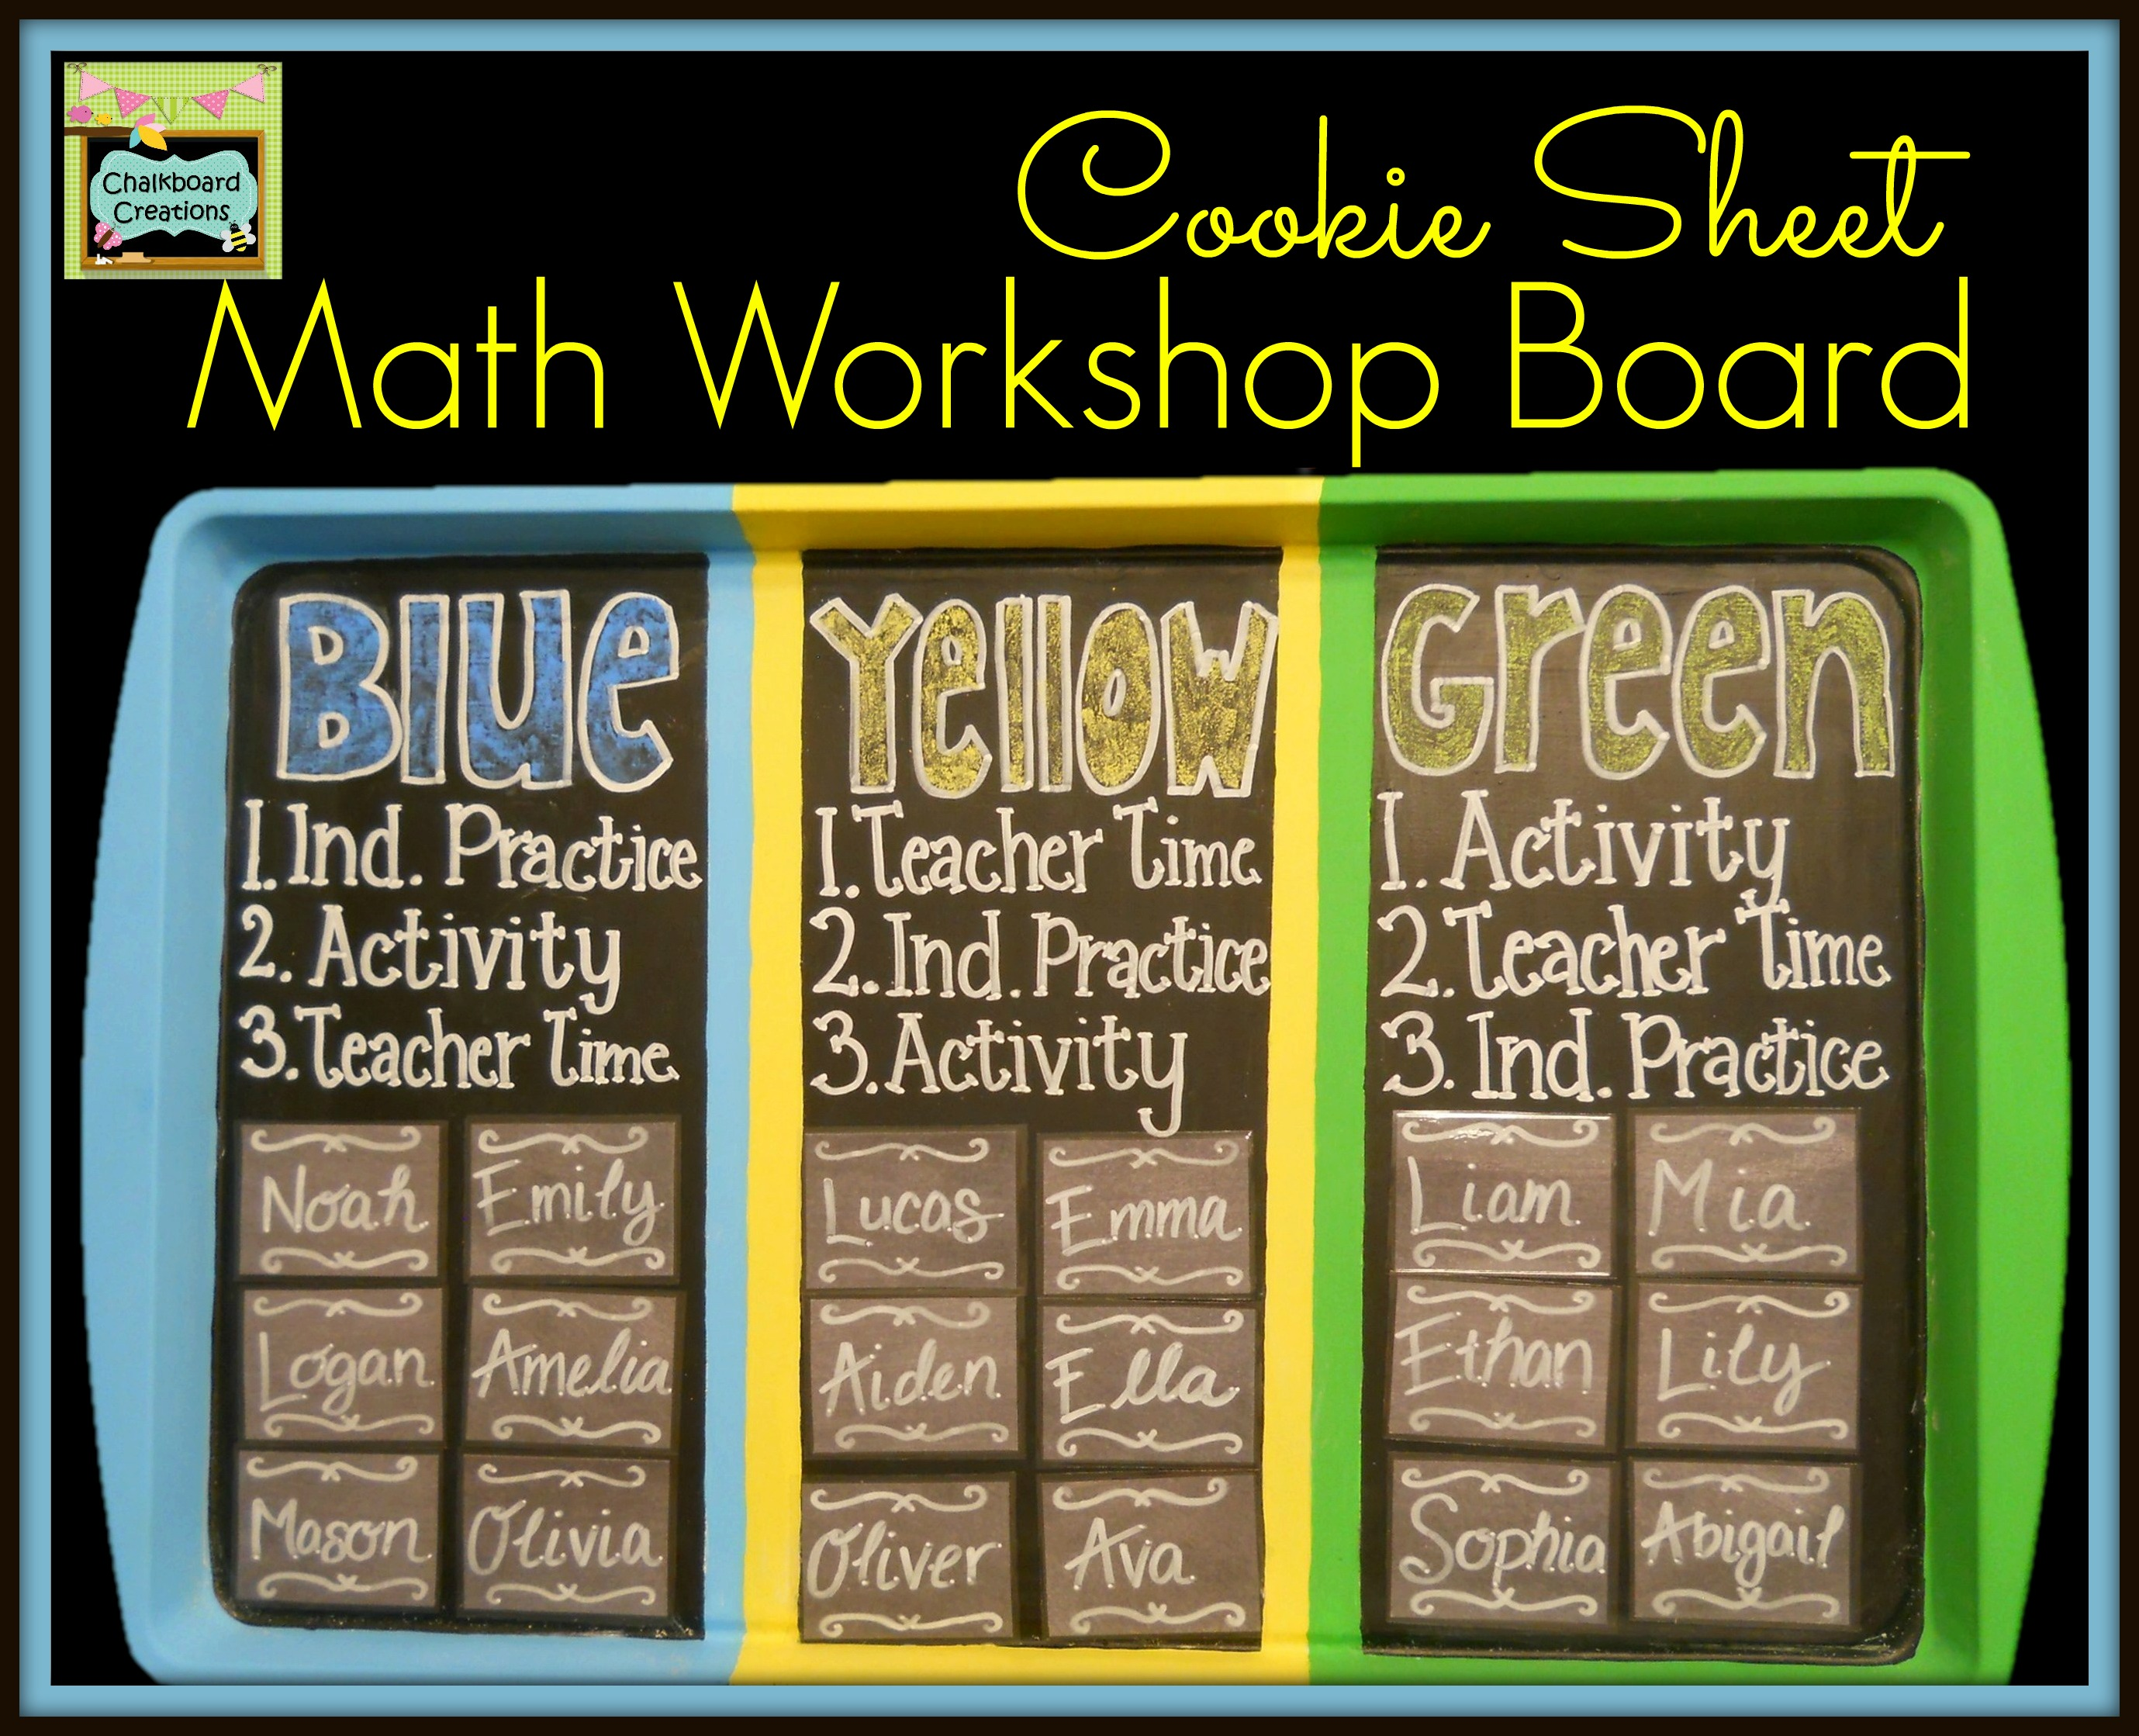 Cookie Sheet Math Workshop Board